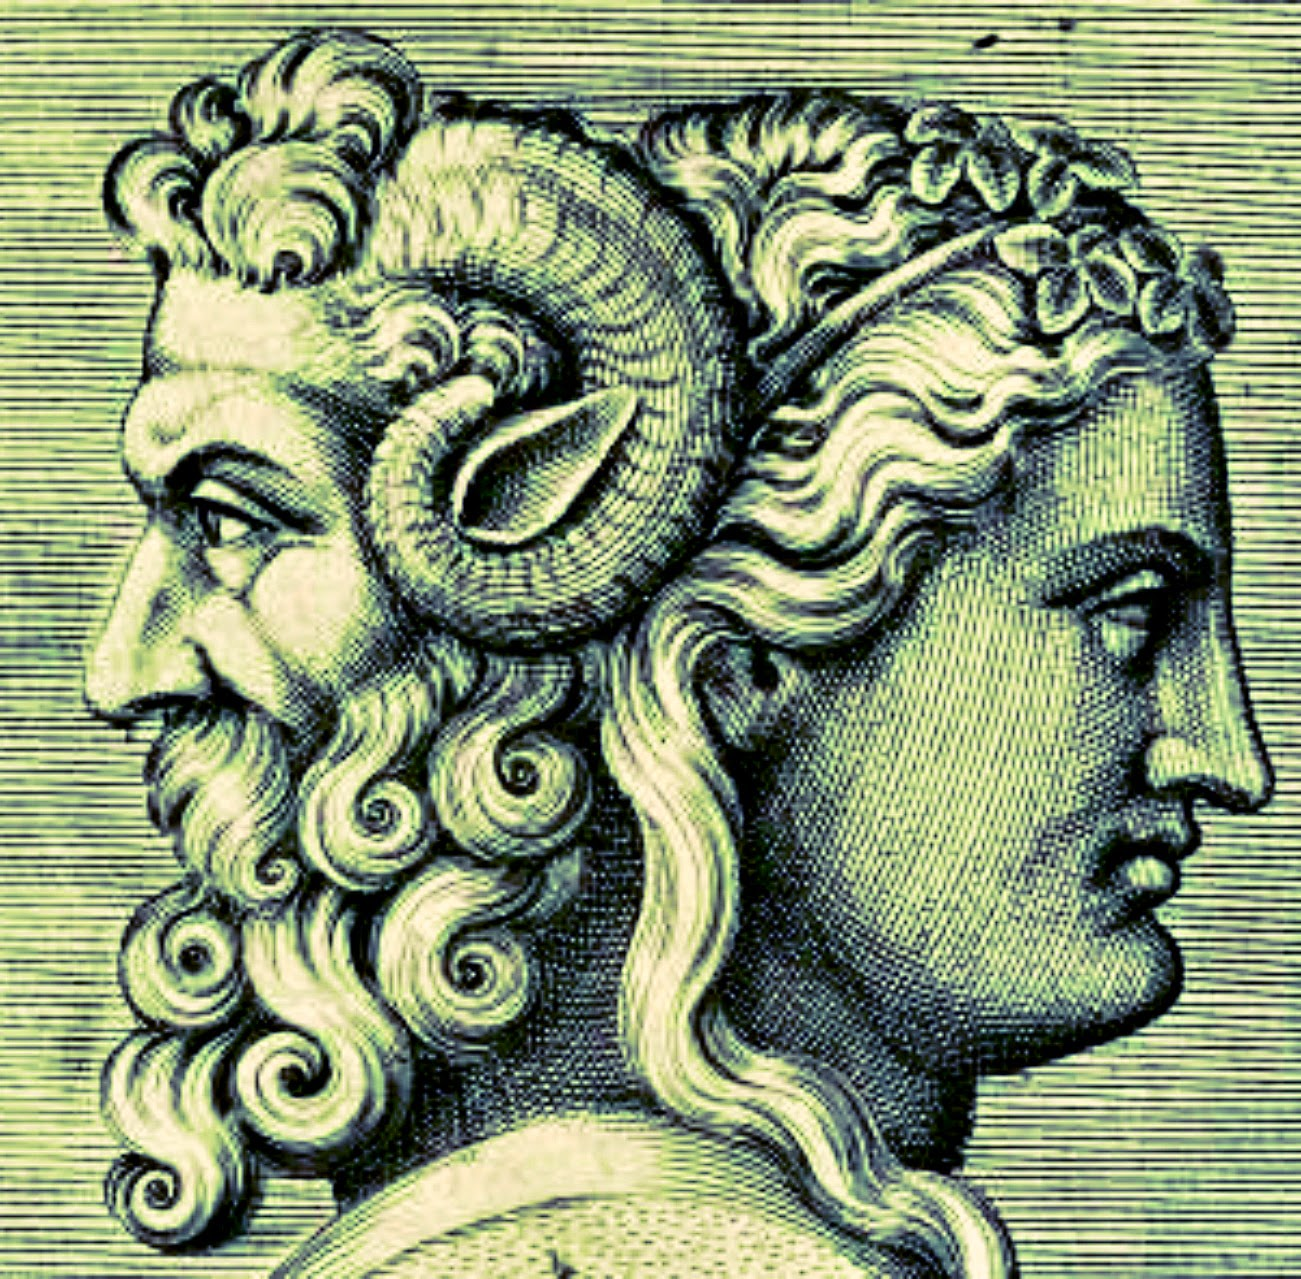 The Roman God Janus